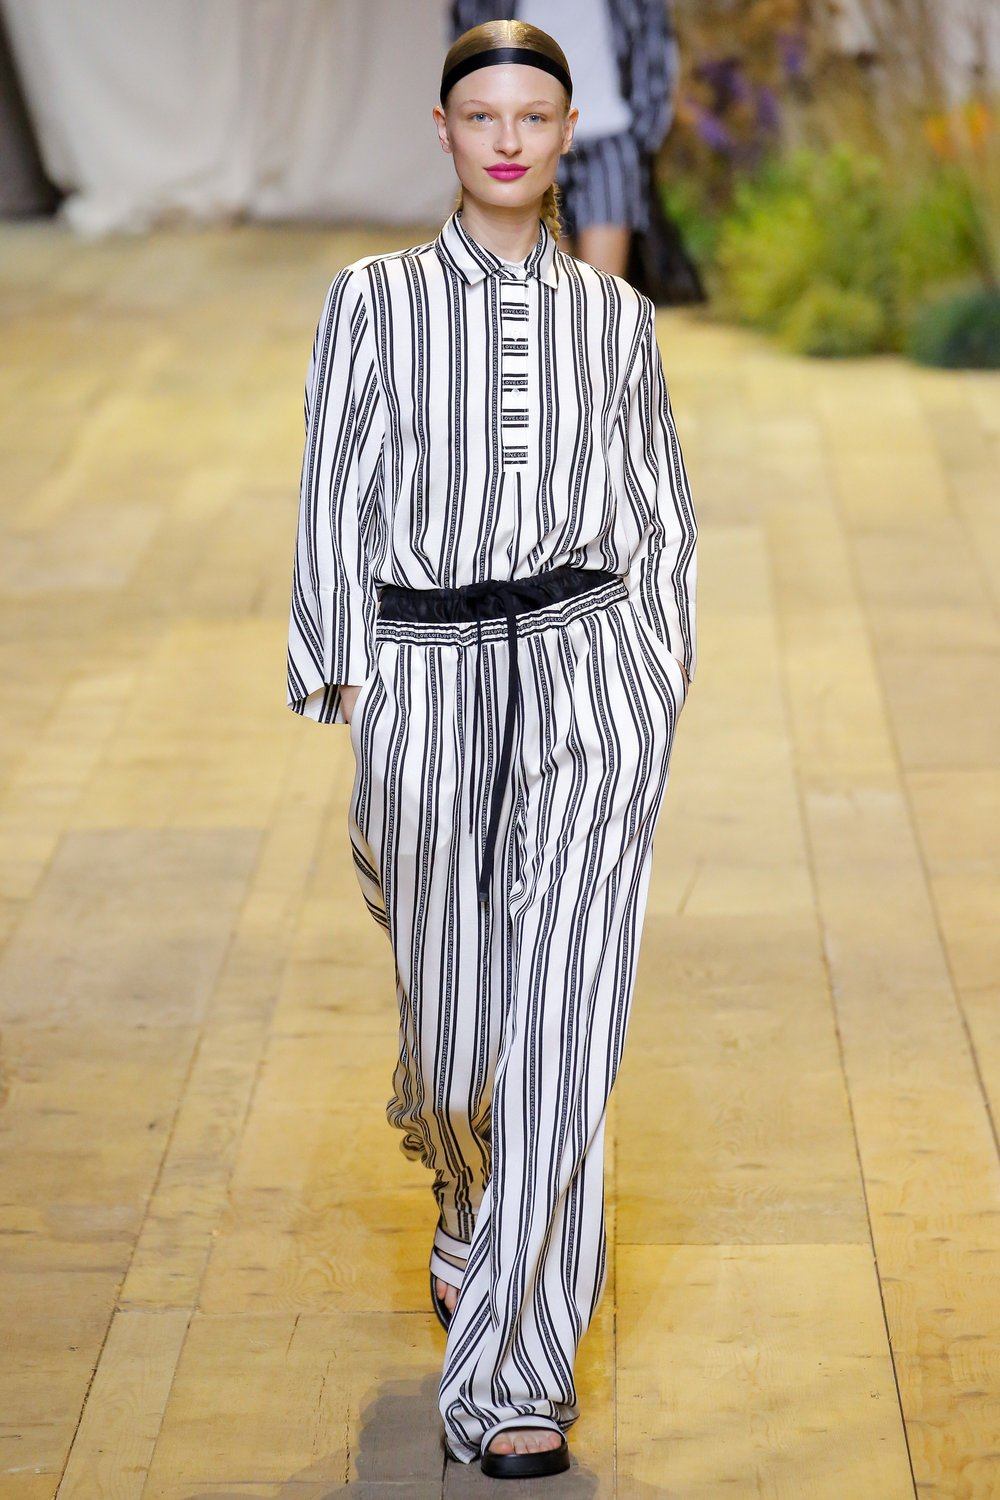 h&m-studio-black-white-stripe.jpg